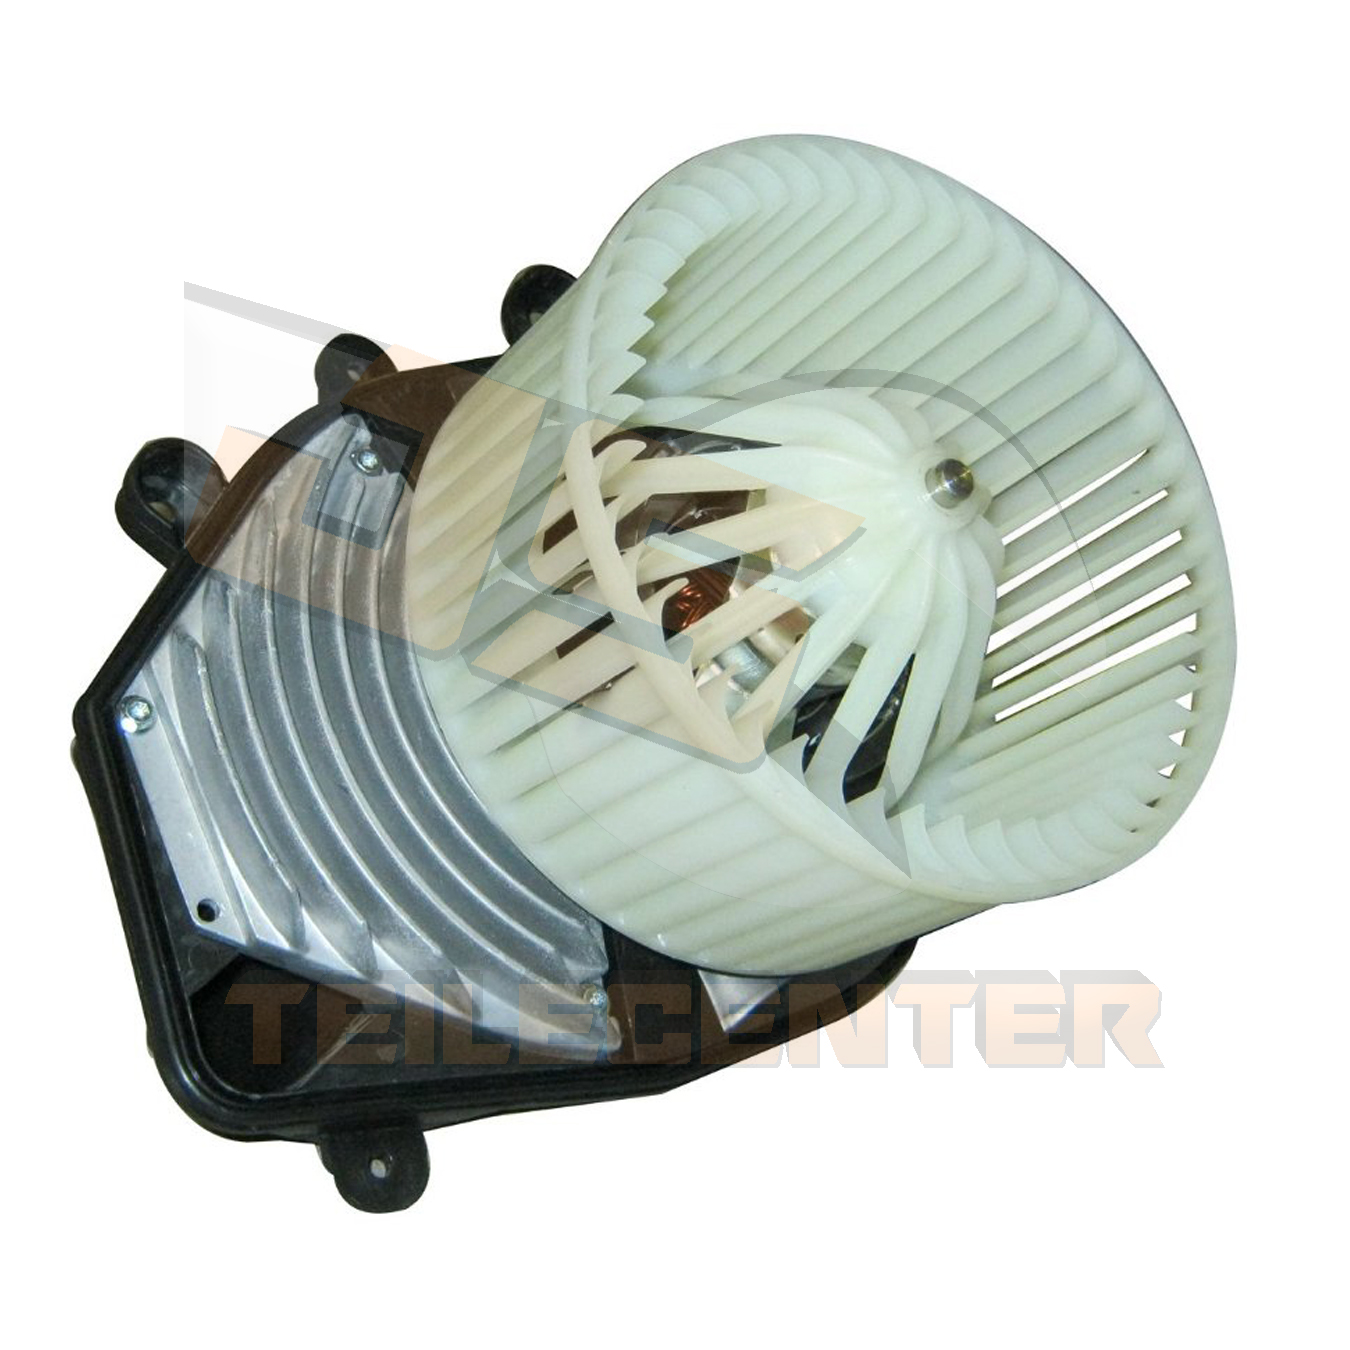 ventilateur int rieur moteur lectrique de blowers skoda superb vw passat 3b ebay. Black Bedroom Furniture Sets. Home Design Ideas